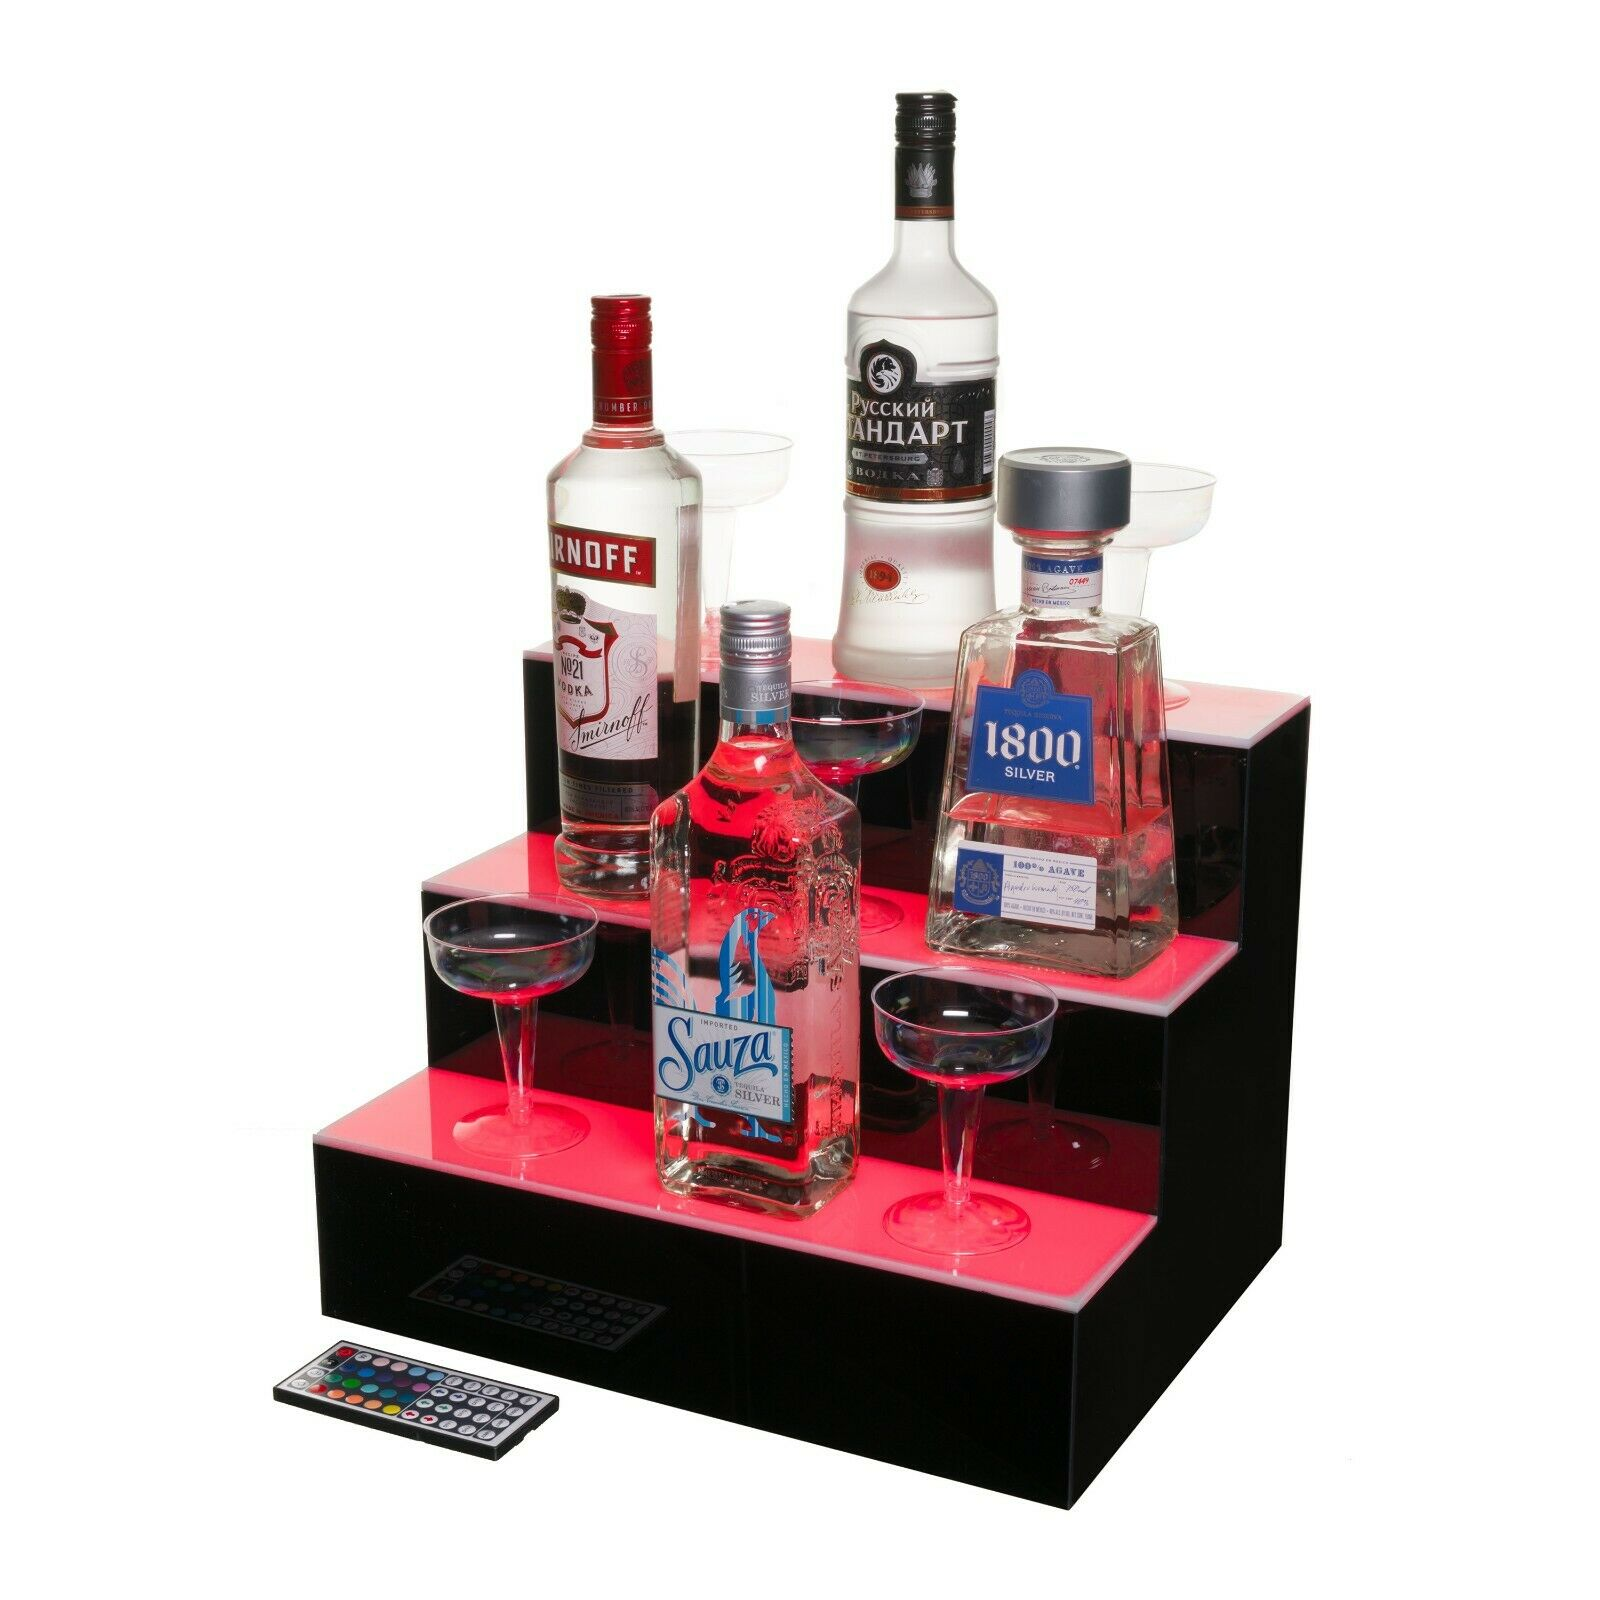 Led Lighted Liquor Bottle Display Illuminated Bottle Shelf 3 Tier Home Bar Bott